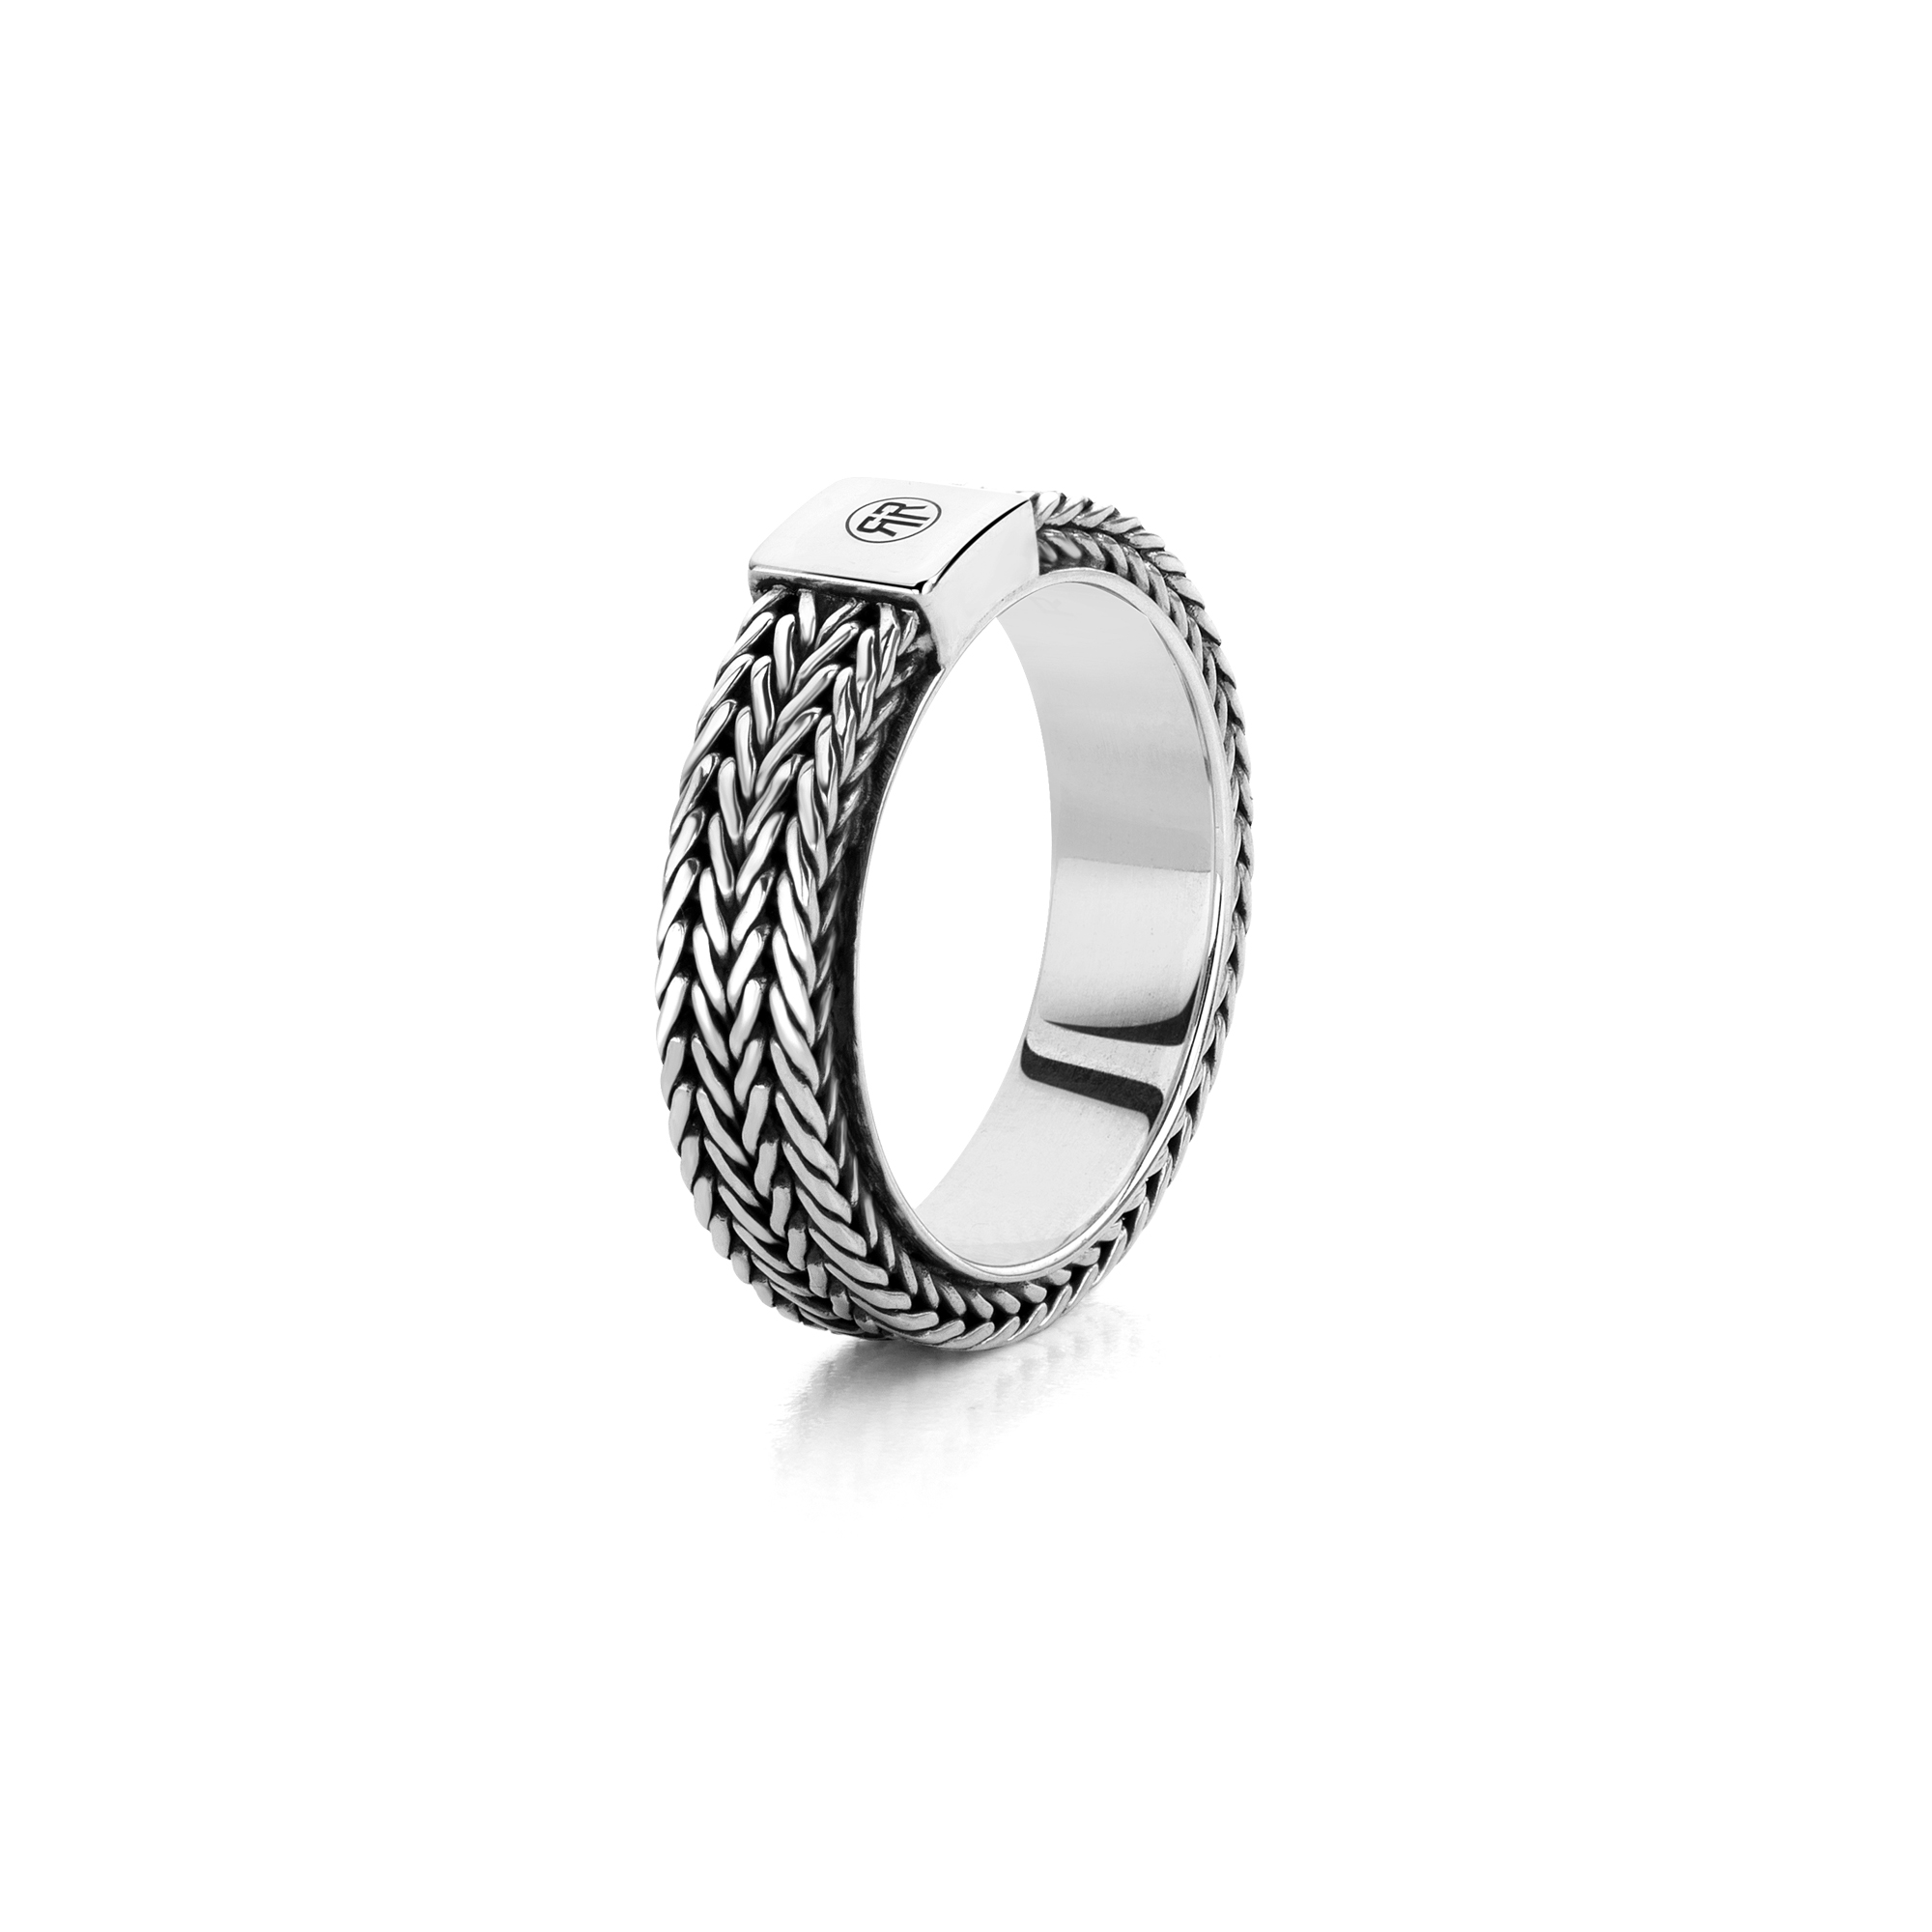 Rebel and Rose RR RG021 S Ring Proteus zilver Maat 60